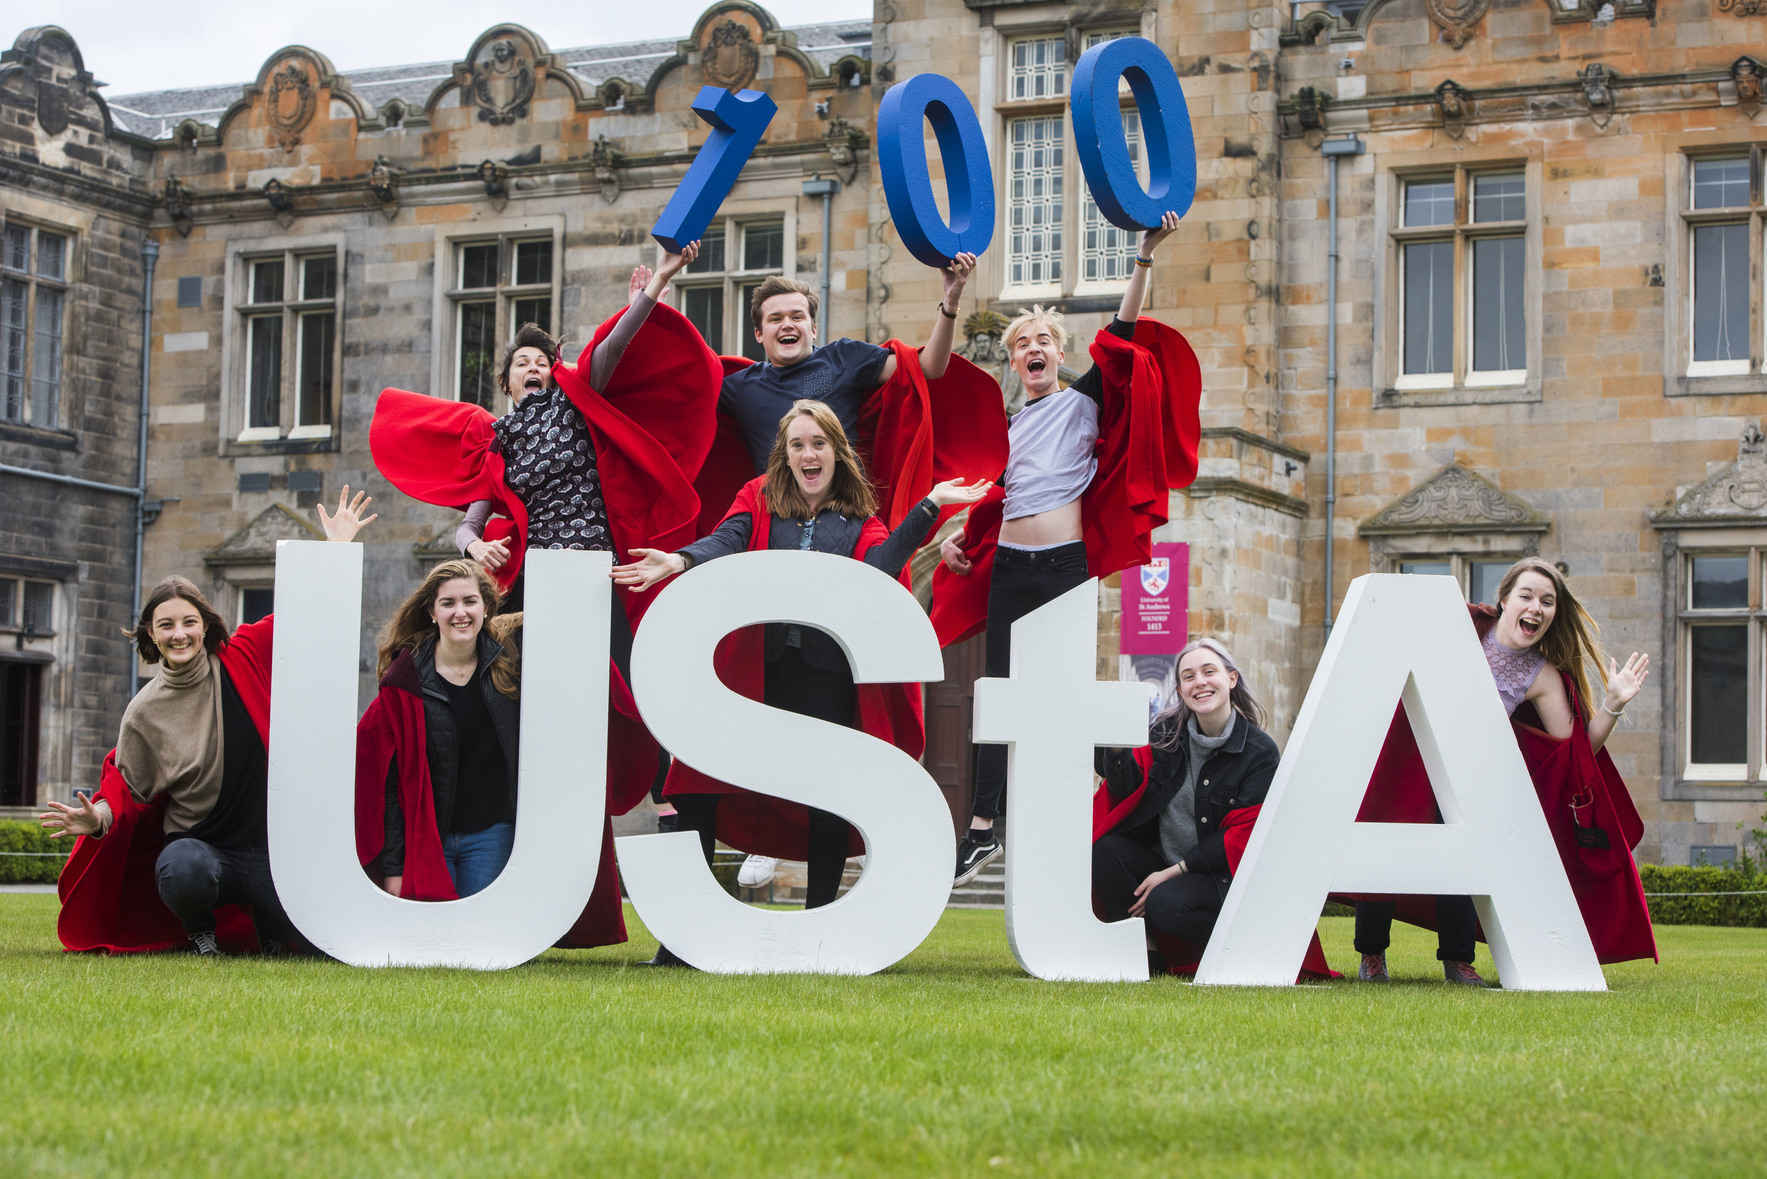 University of St Andrews 600th Anniversary Campaign image